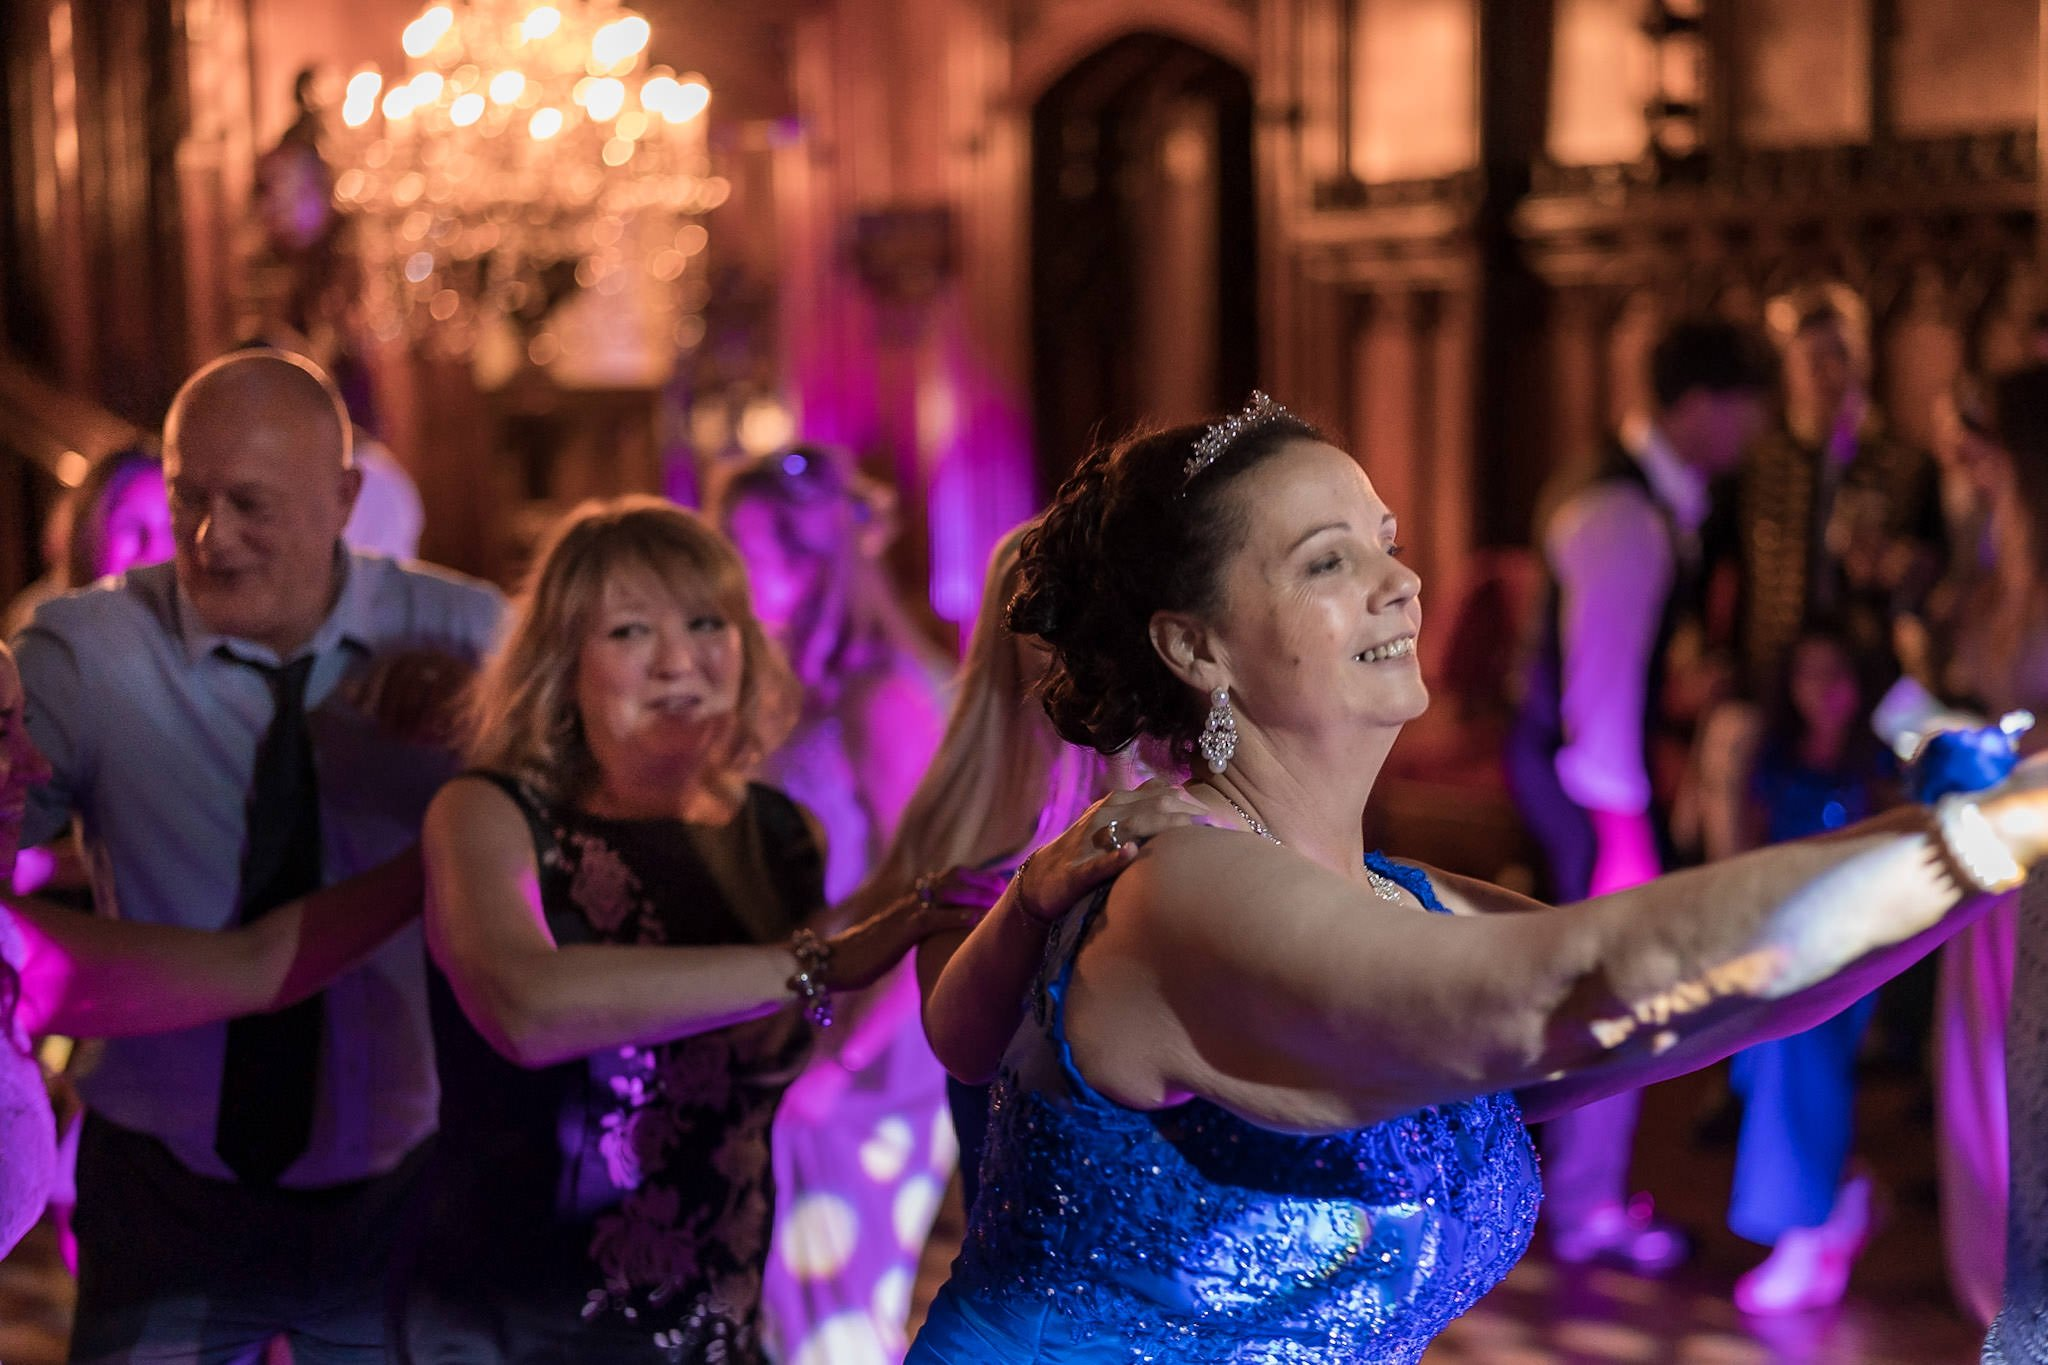 Allerton Castle Knaresborough Hutchinson Weddings Photography wedding guests doing the conga line during the evening fun and festivities